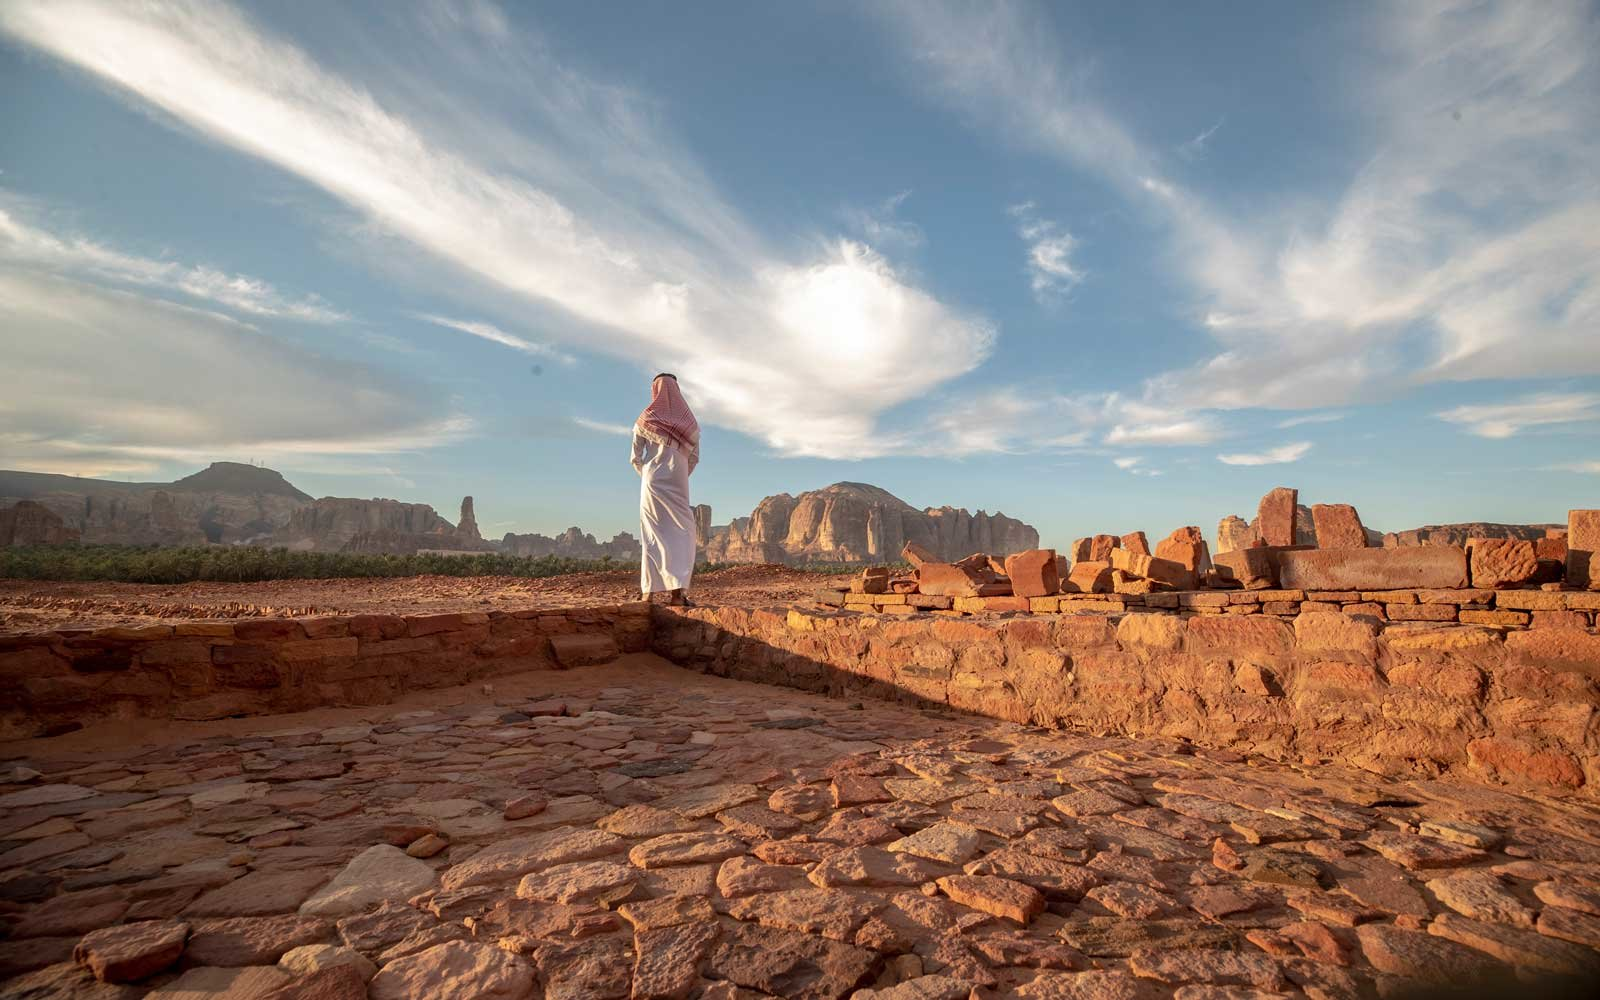 Saudi Arabia to allow foreign tourists